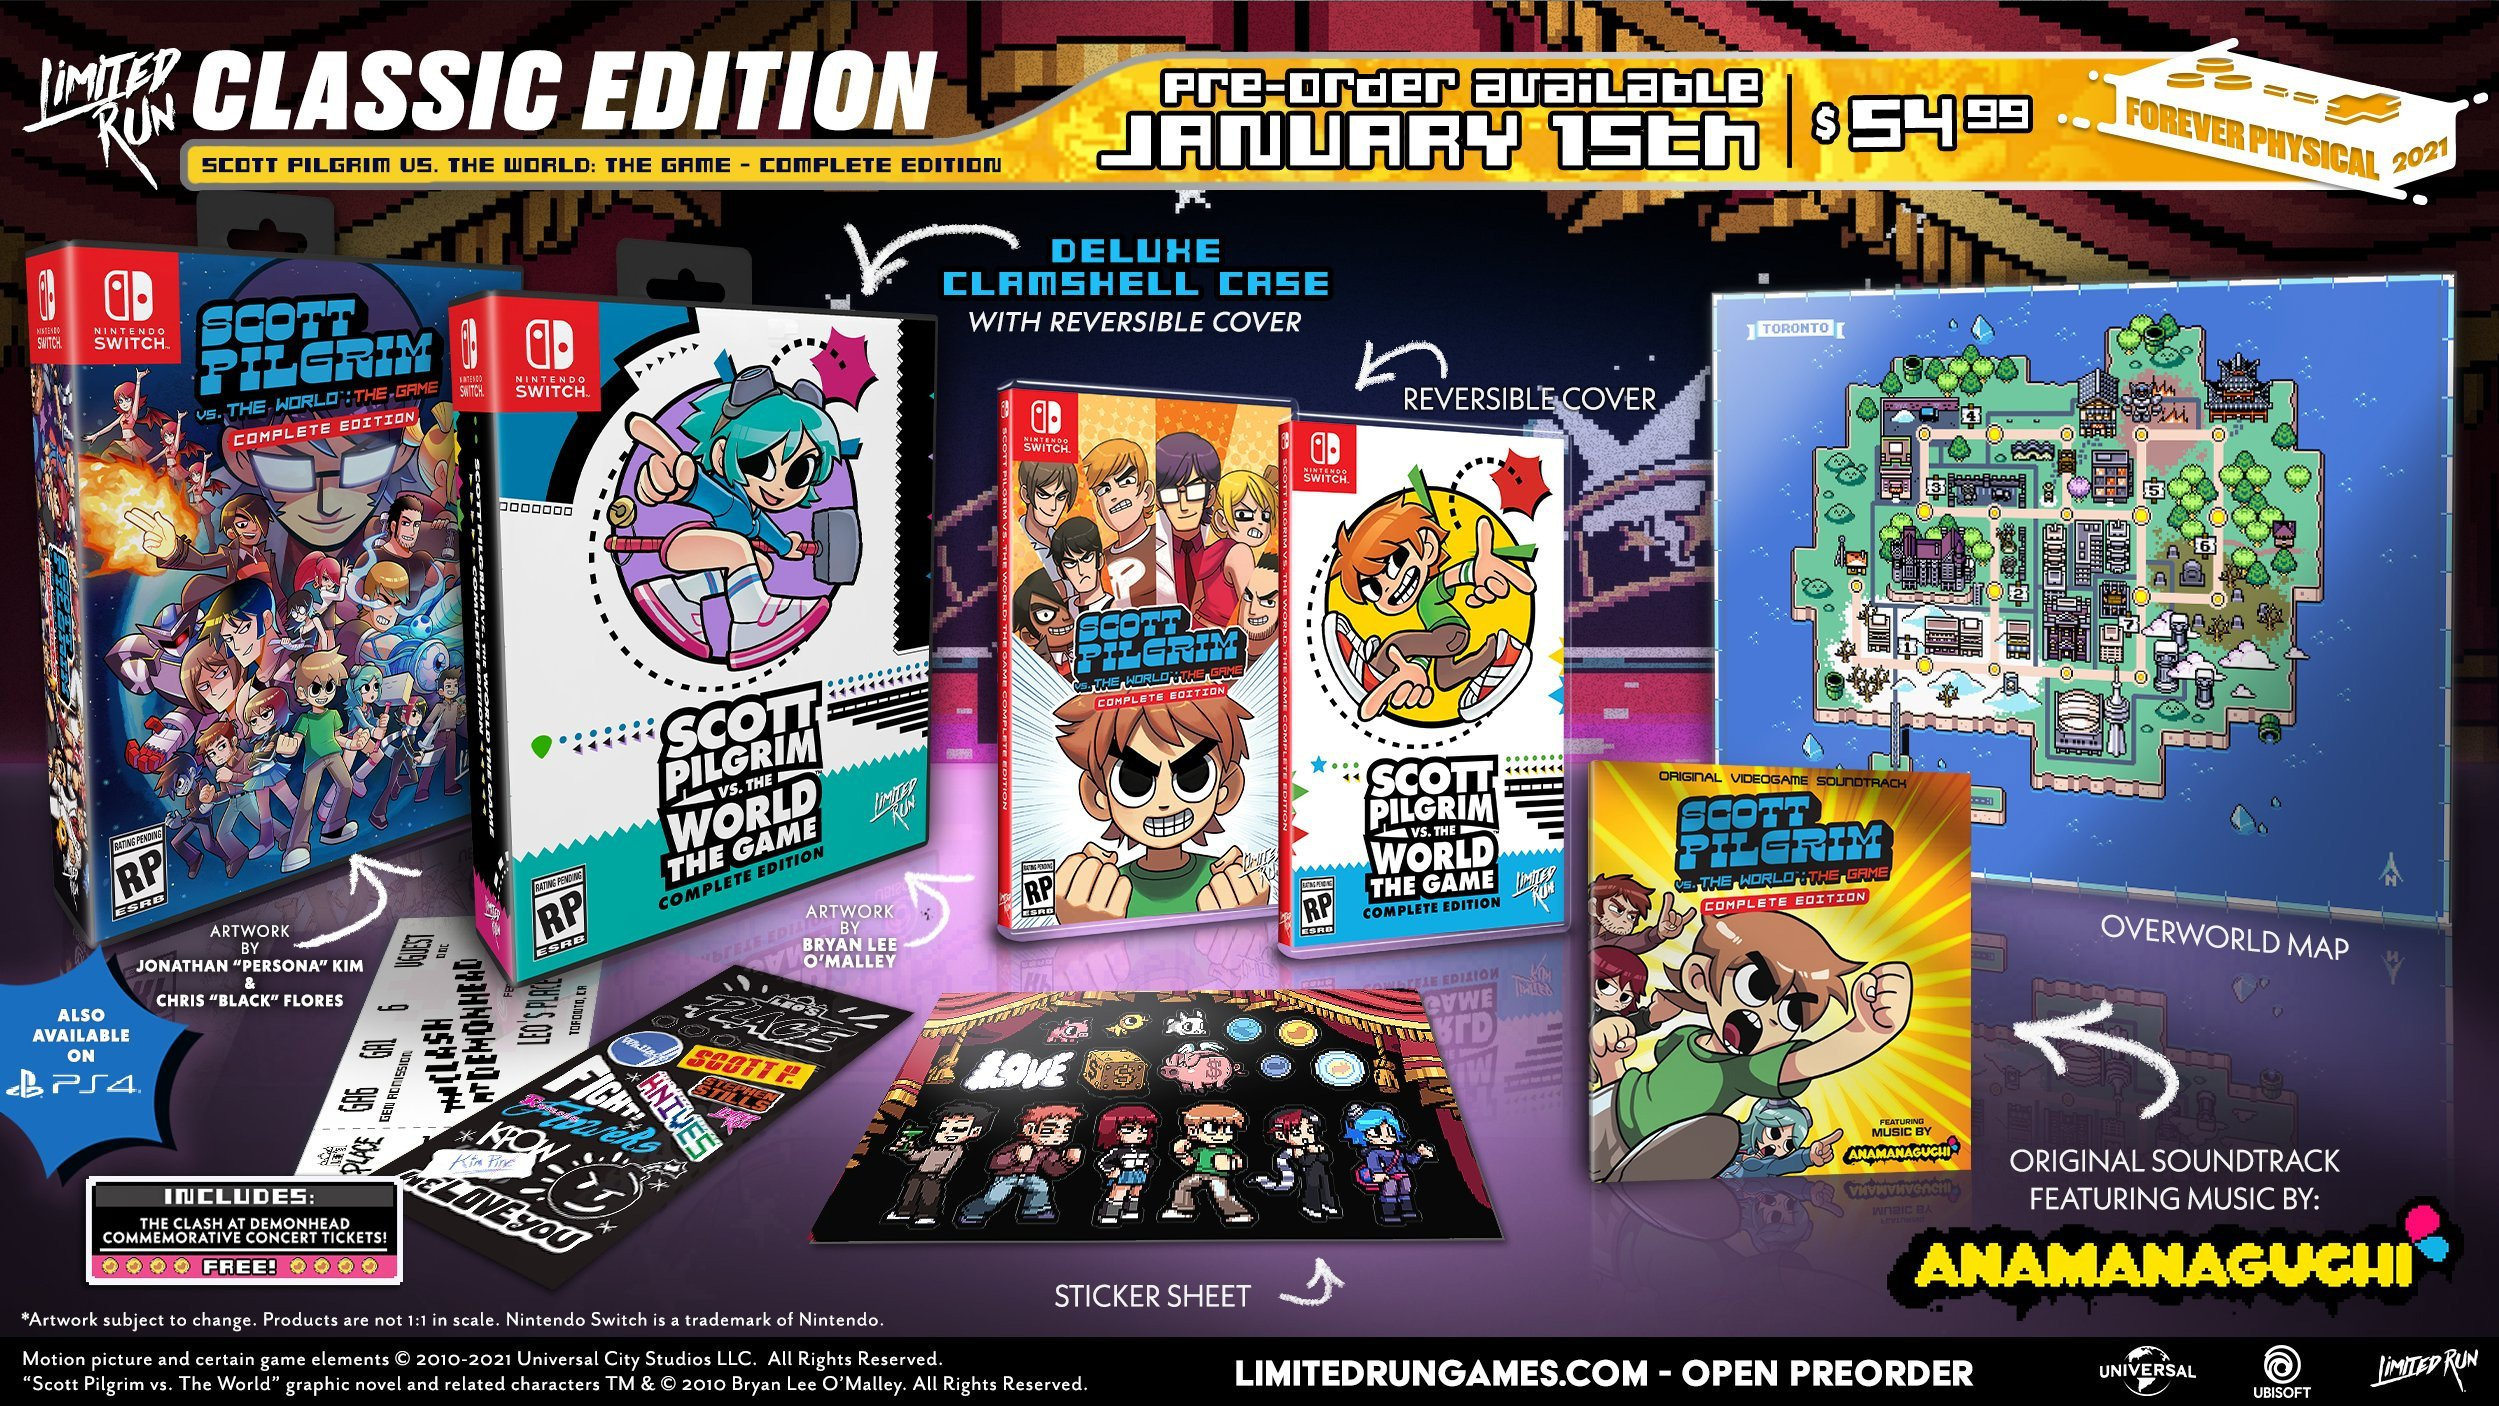 The Classic physical edition of Scott Pilgrim vs. the World: The Game